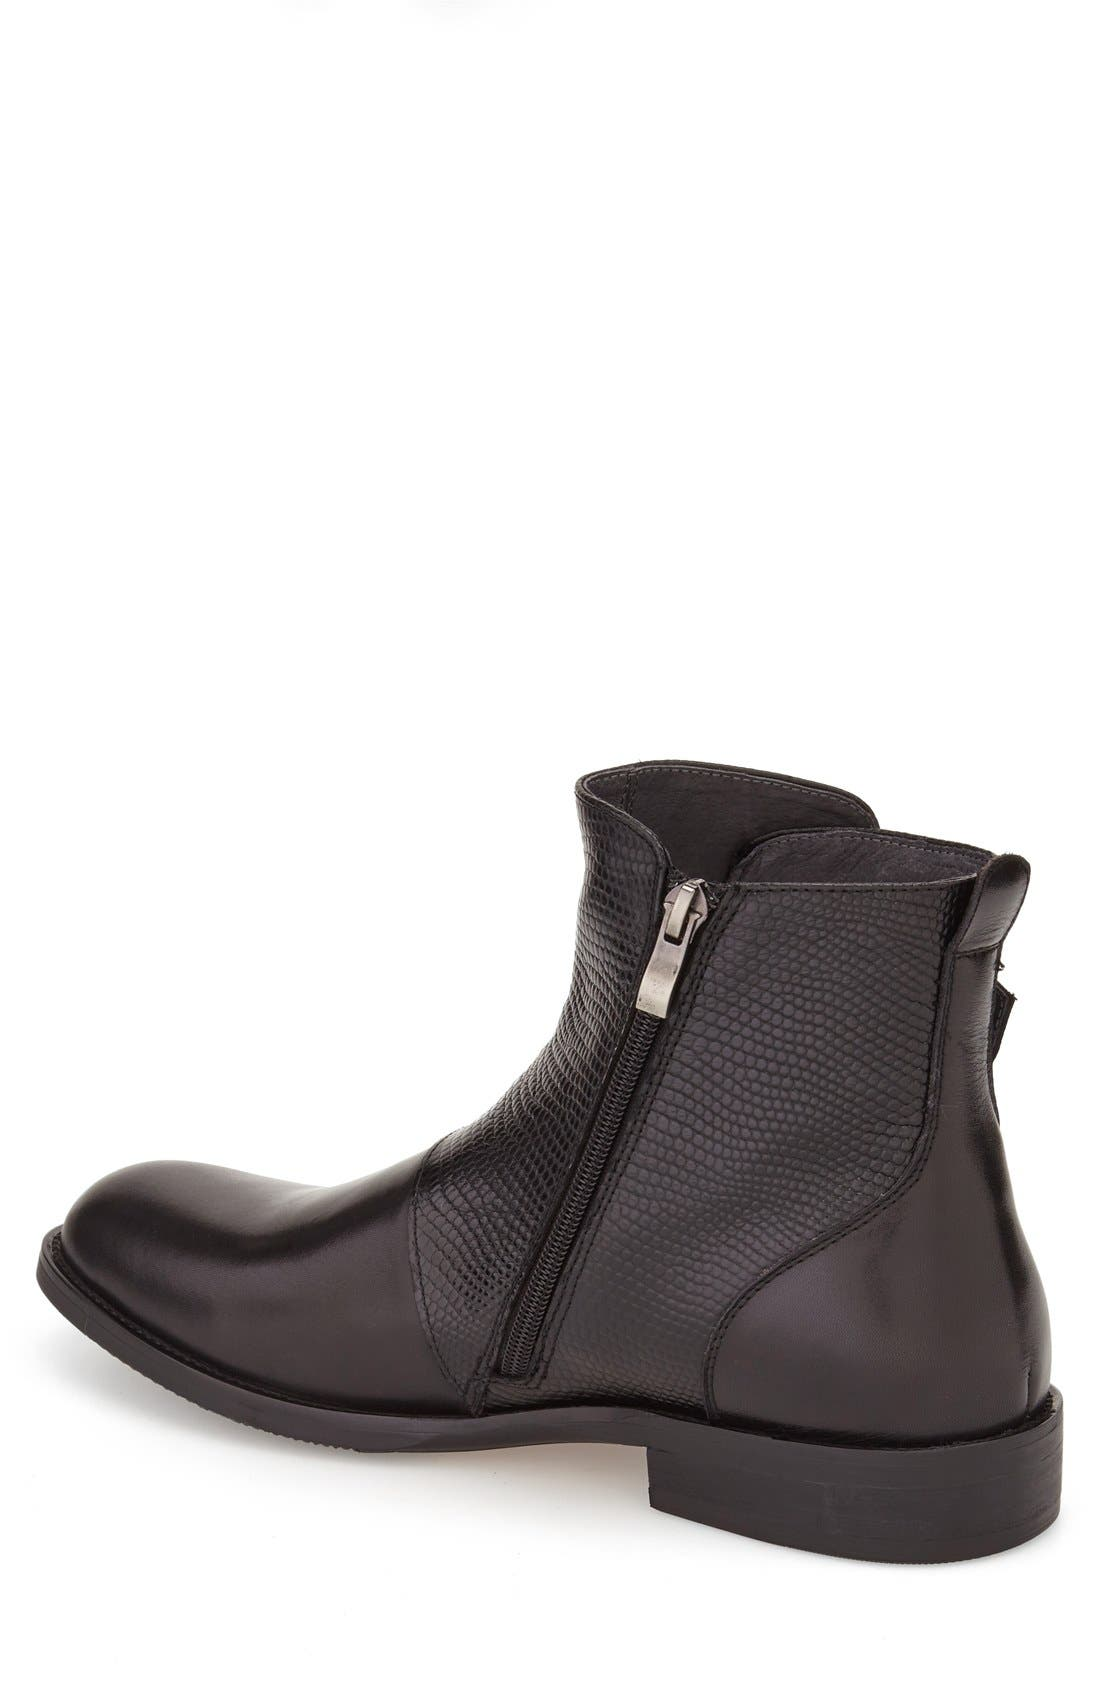 Alternate Image 2  - Zanzara 'Messina' Zip Boot (Men)